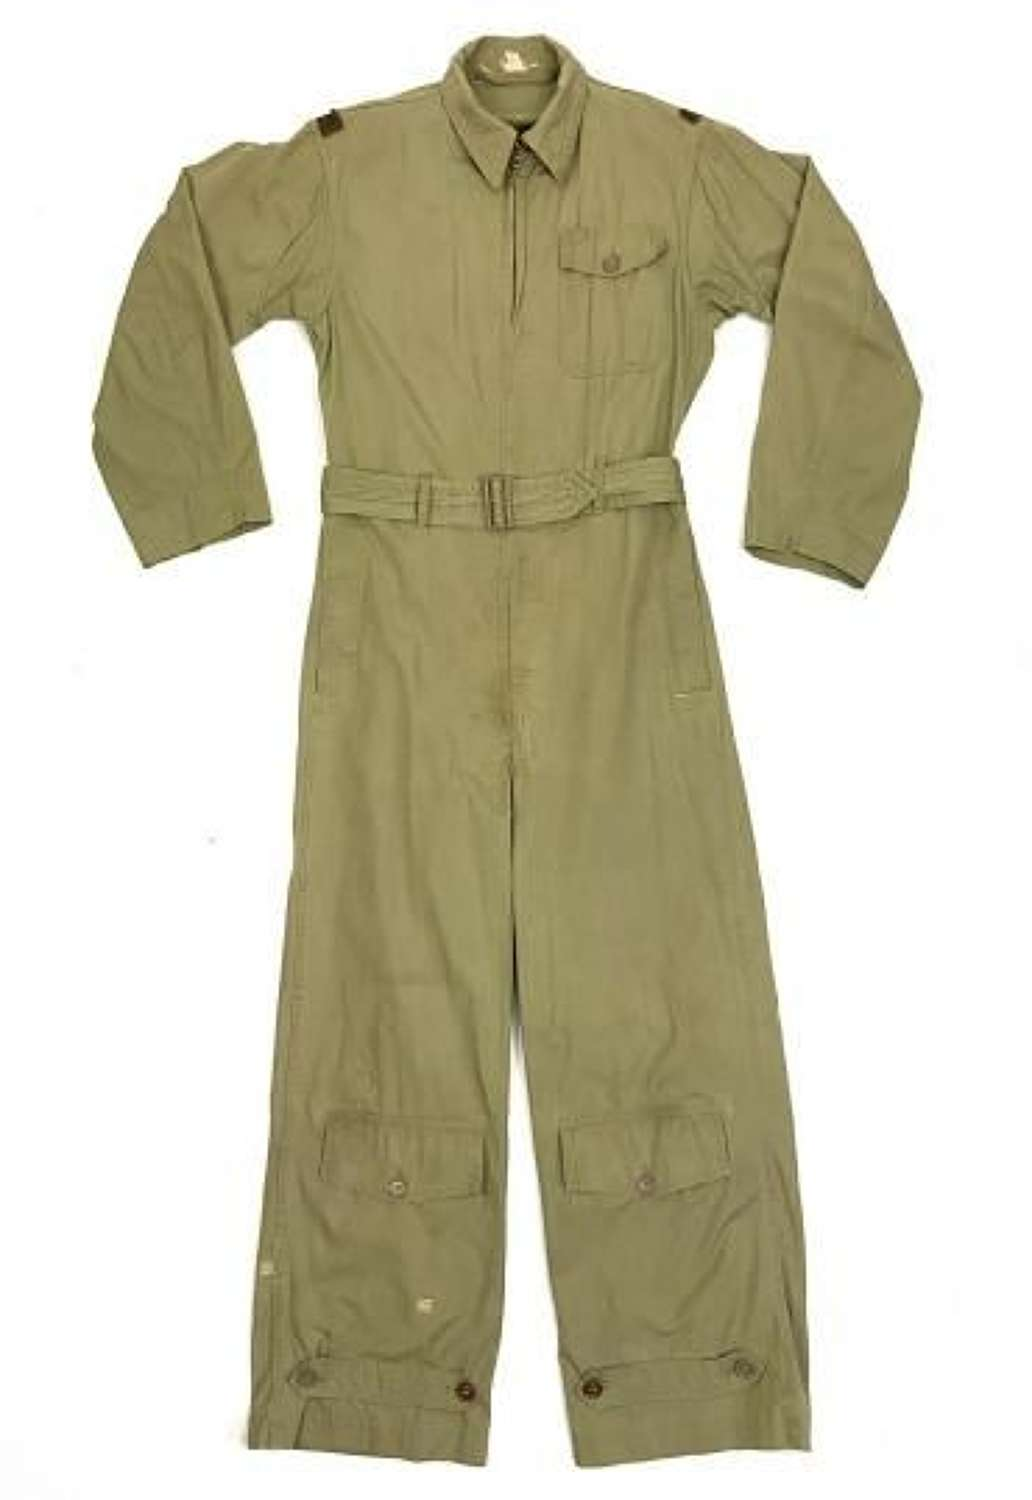 Original WW2 US 'Suit - Summer Flying' AN6550 - AN-S-31 - Size 36